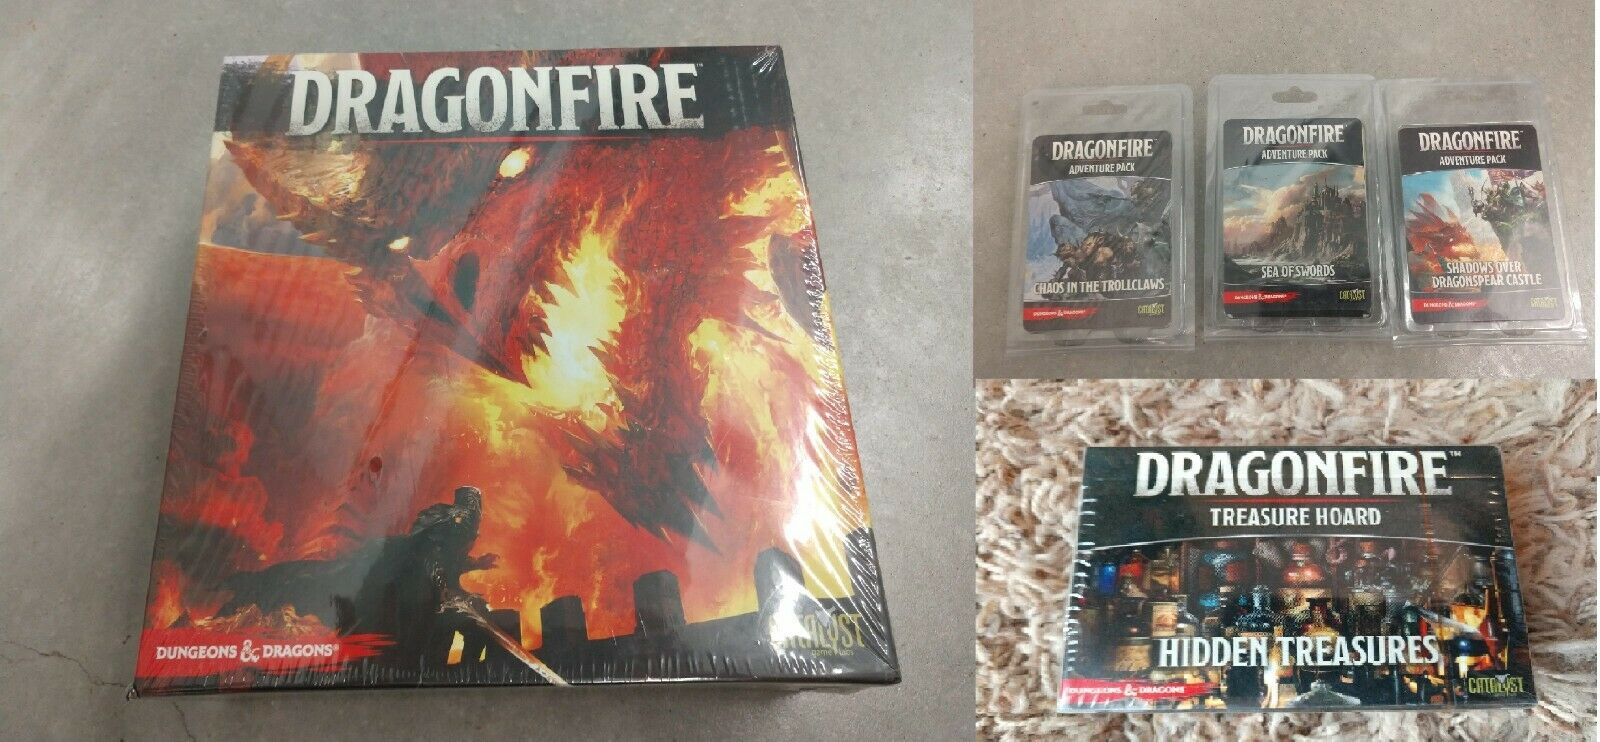 Dragonfire + Hidden Treasures + Expansions - NEW - Dungeons & Dragons Board Game